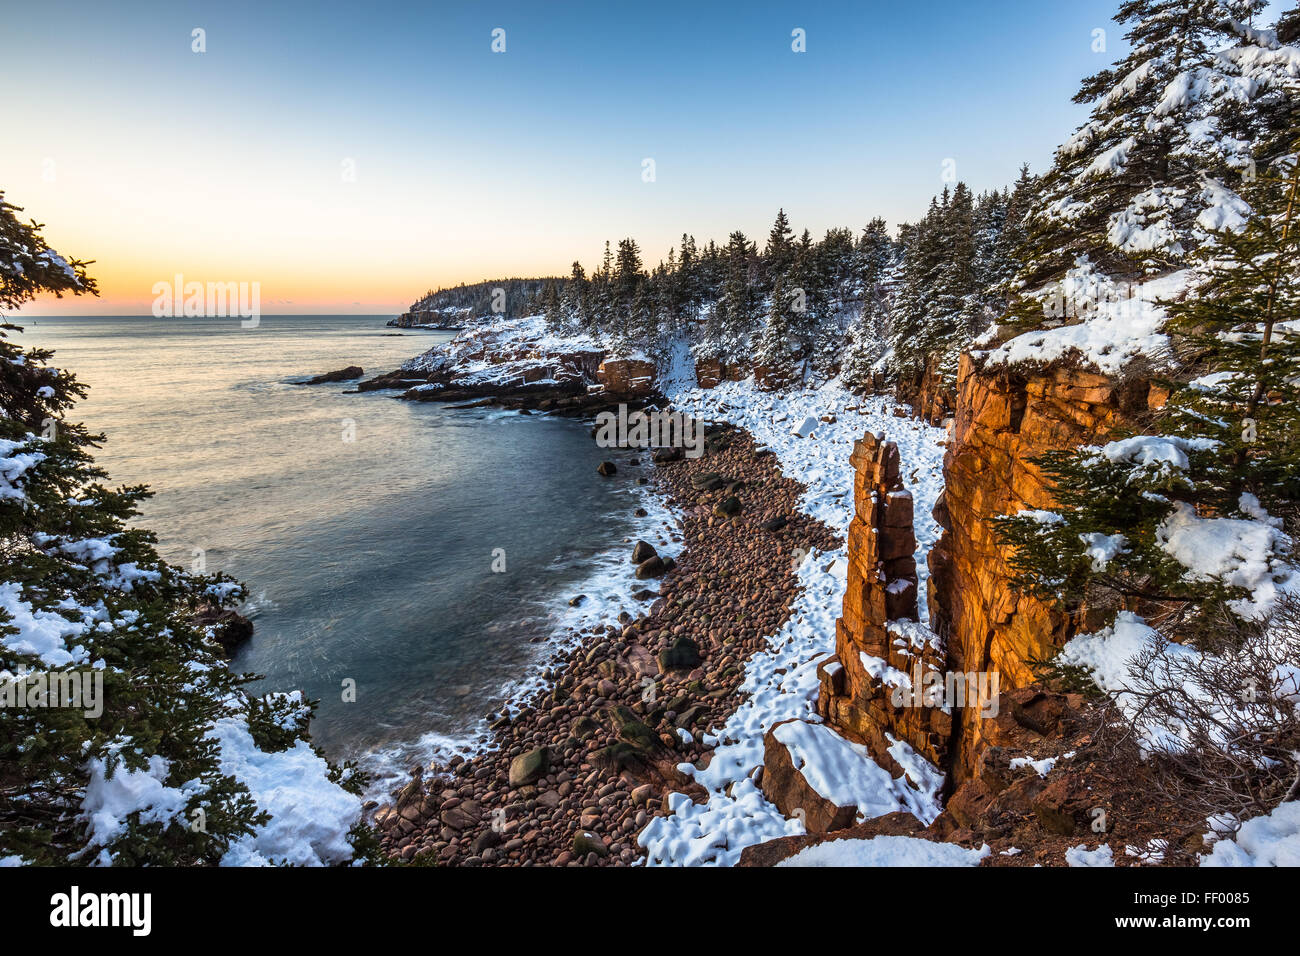 Acadia Cove Photo 95271909 Covered National Monument Park Stock Mount Alamy In Snow Winter -